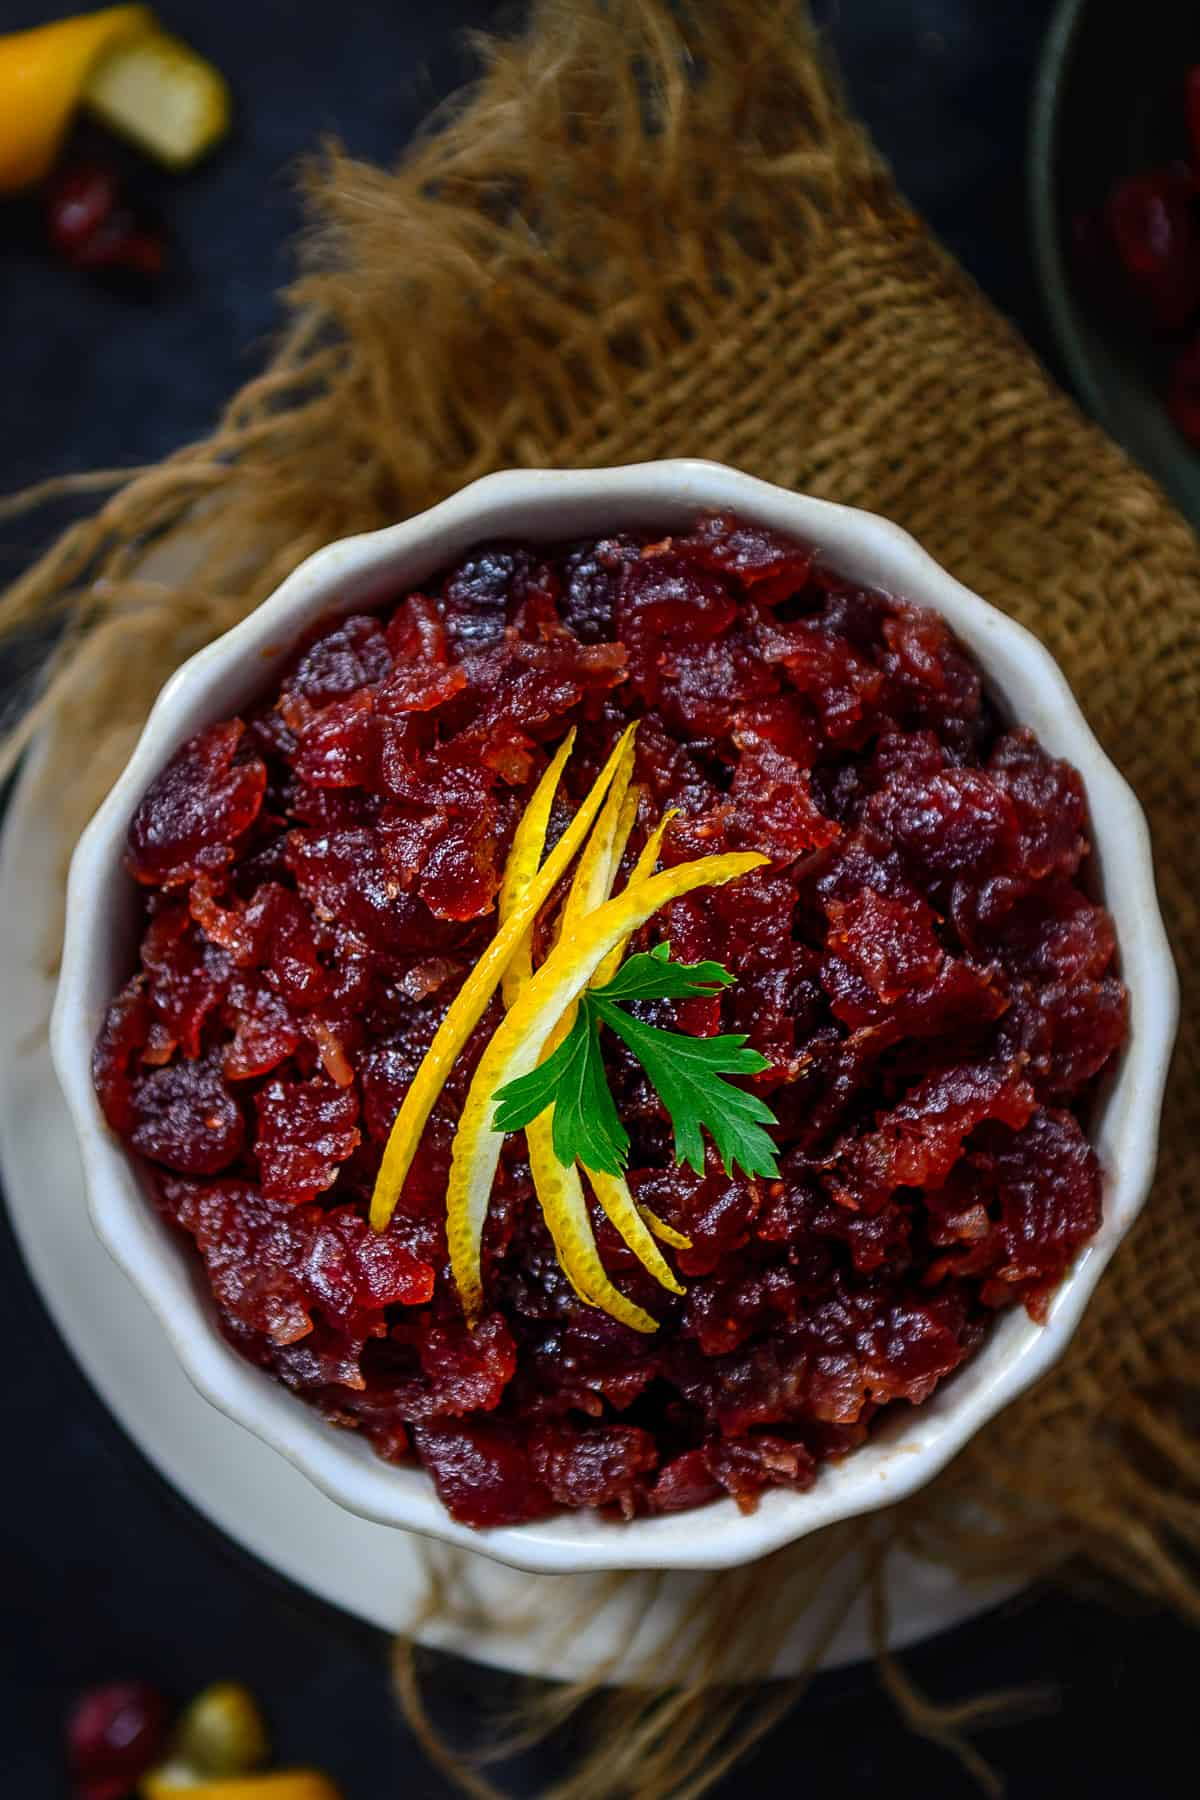 Cranberry Chutney served in a bowl.